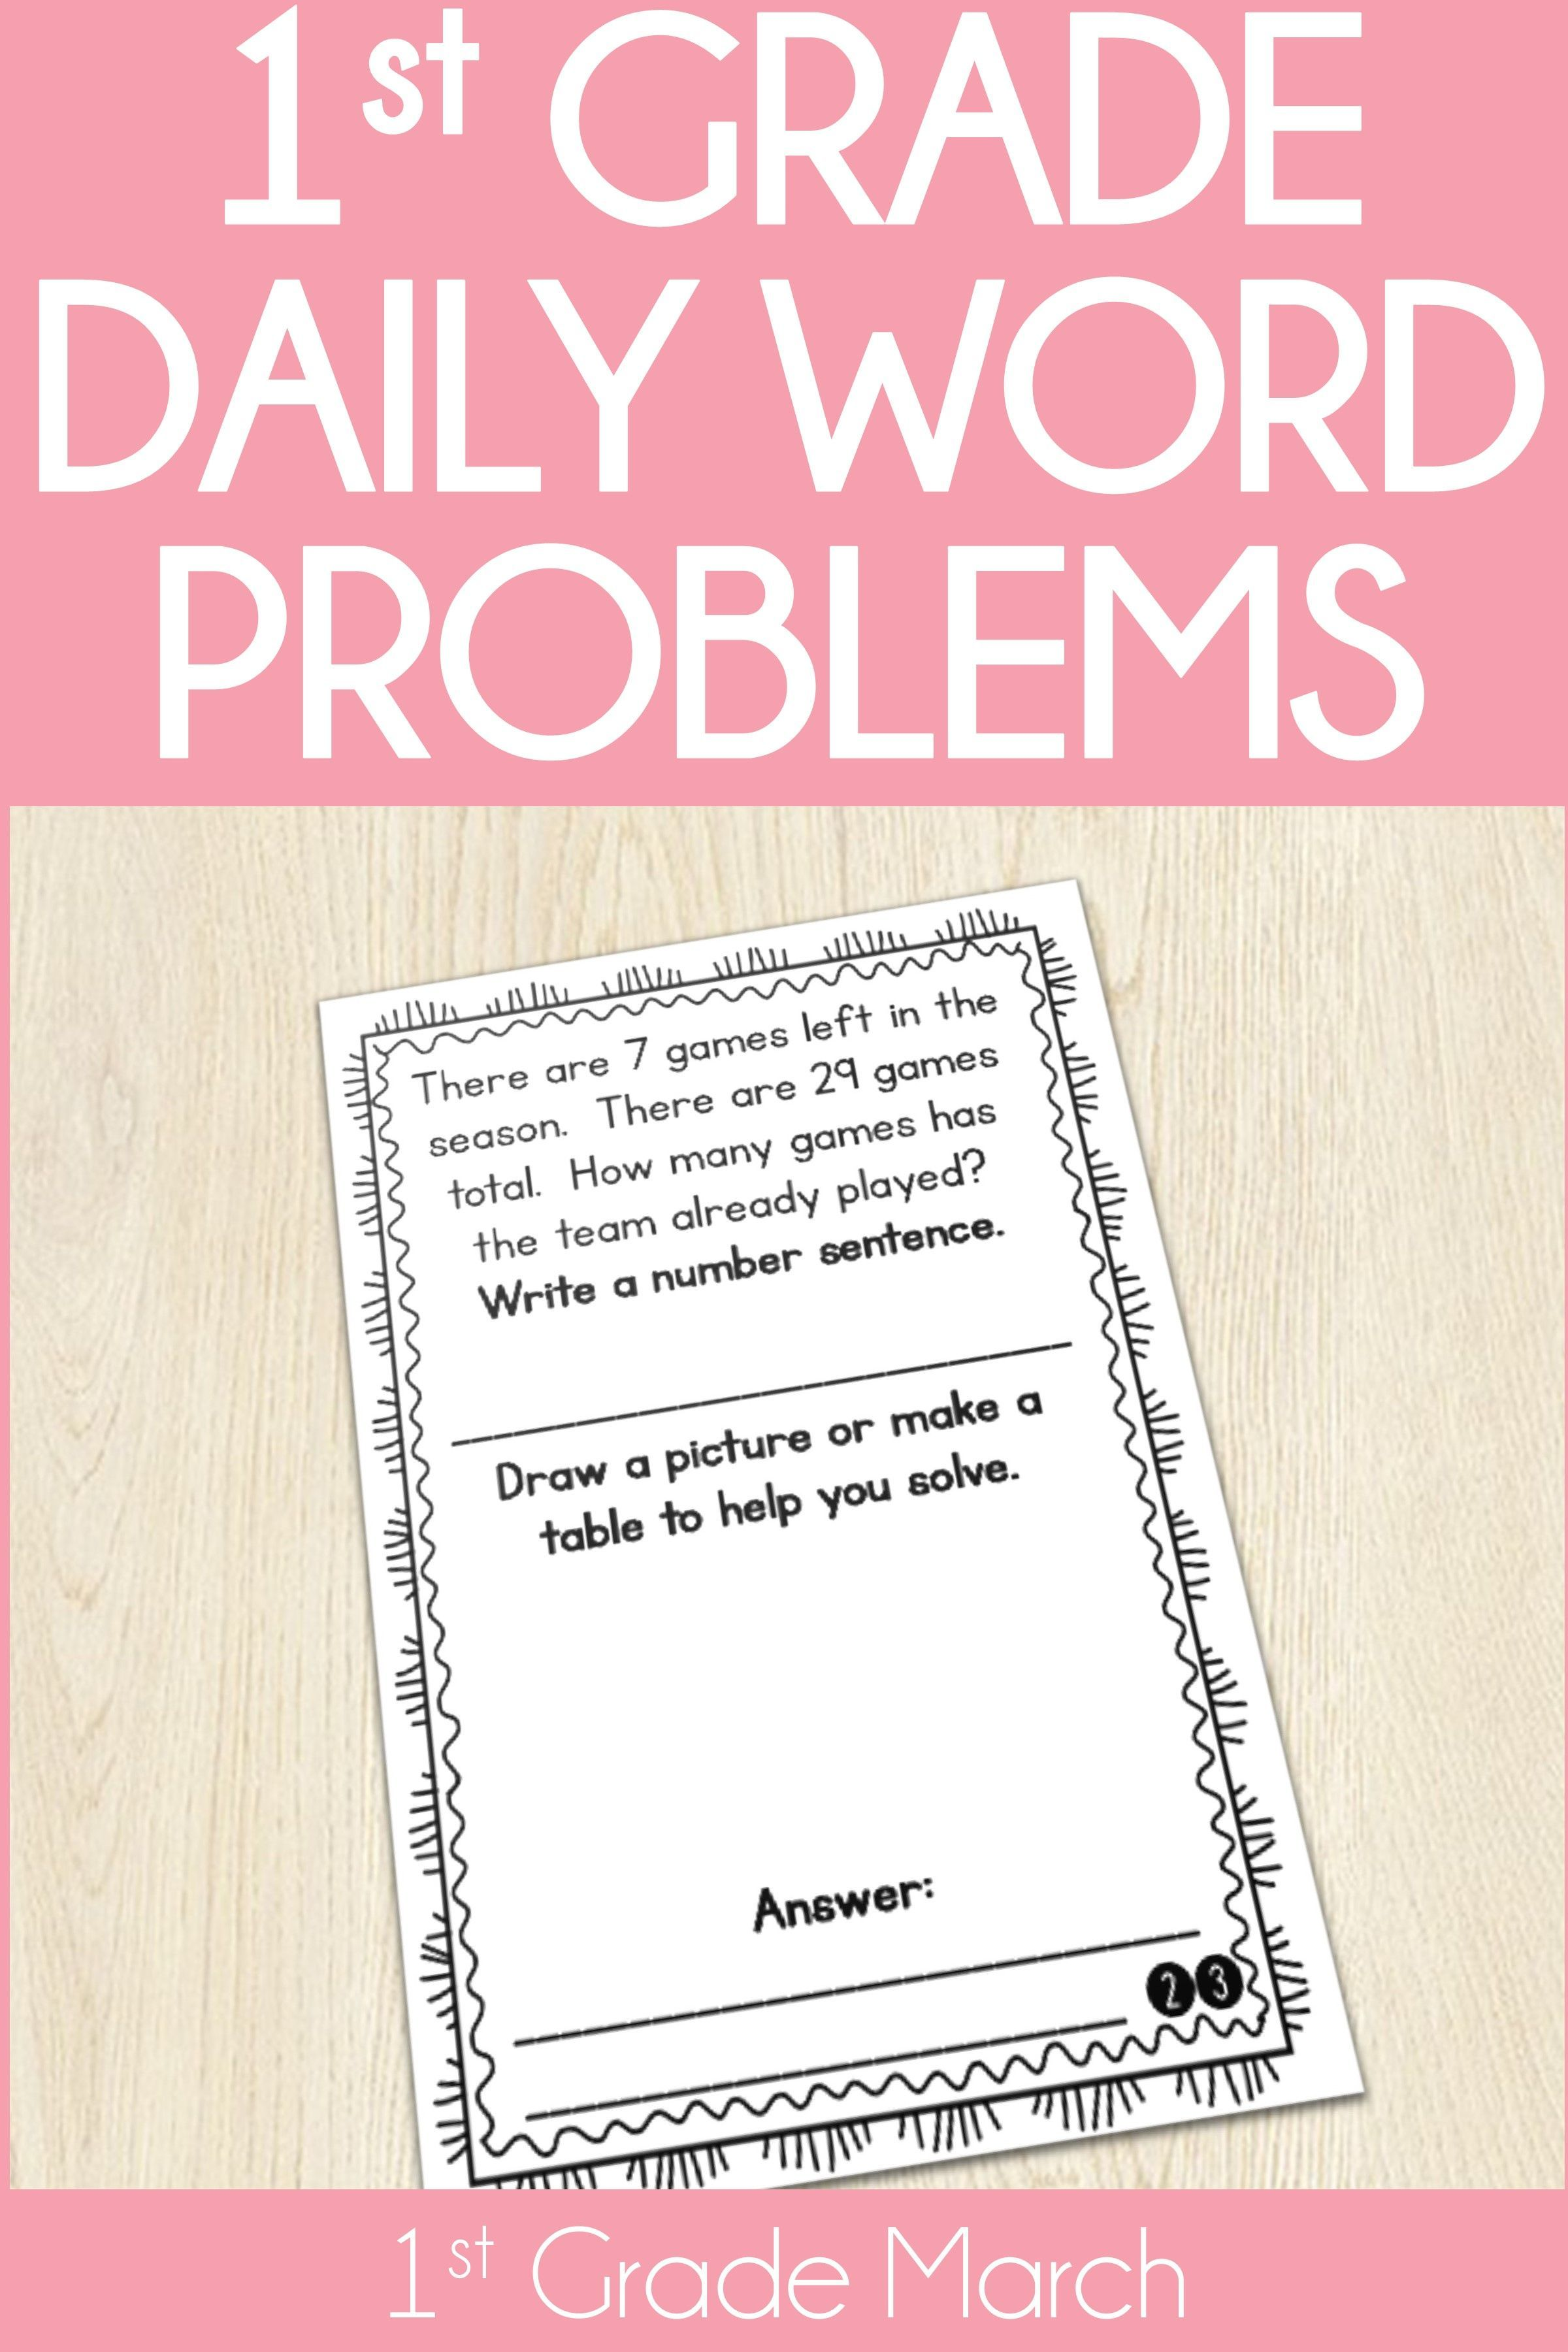 1st grade word problem of the day story problems march